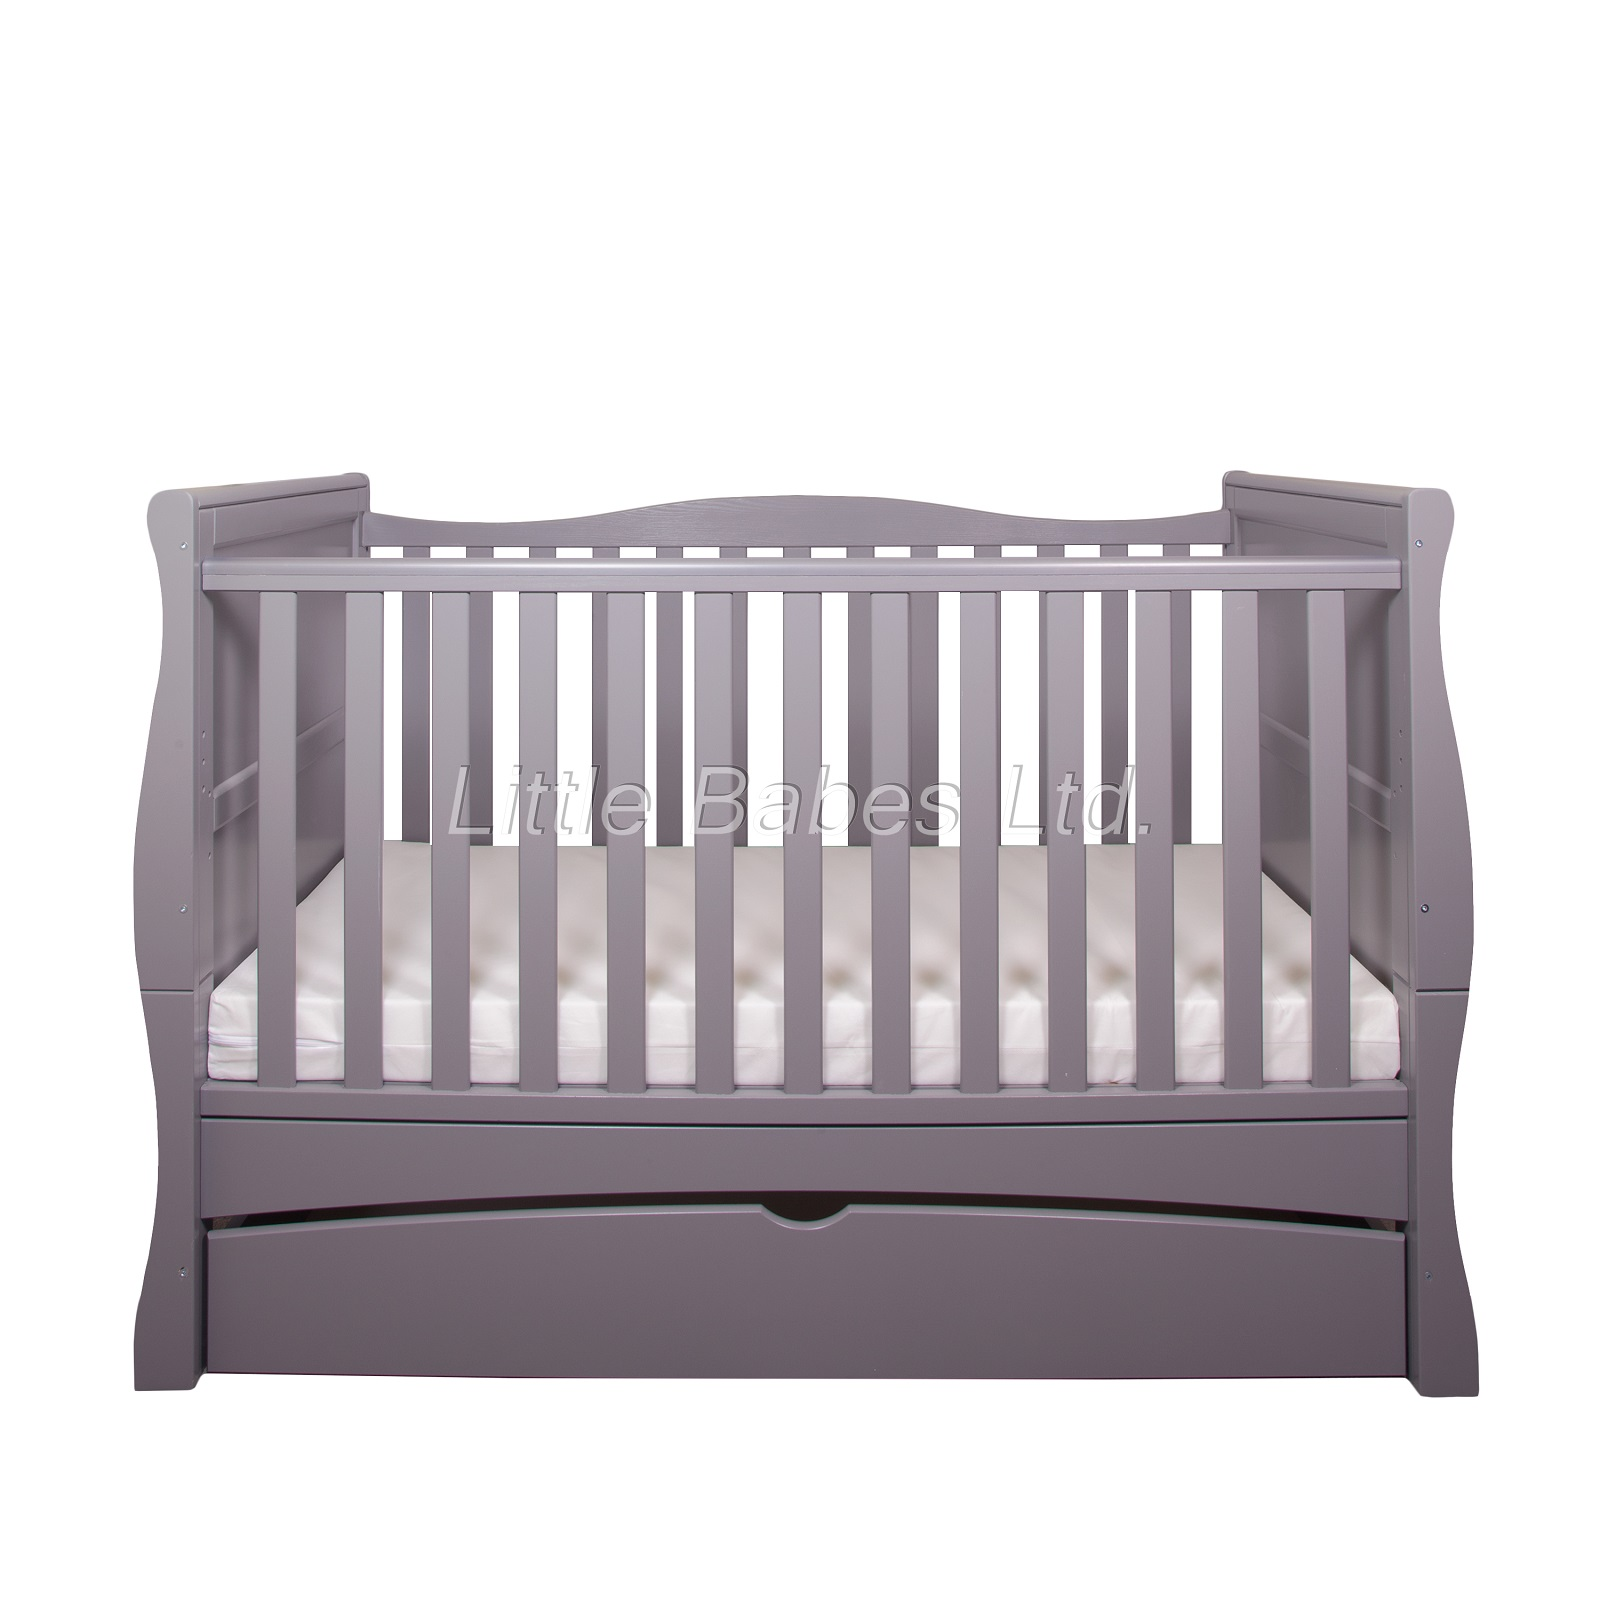 Grey Cot Bed for your Baby